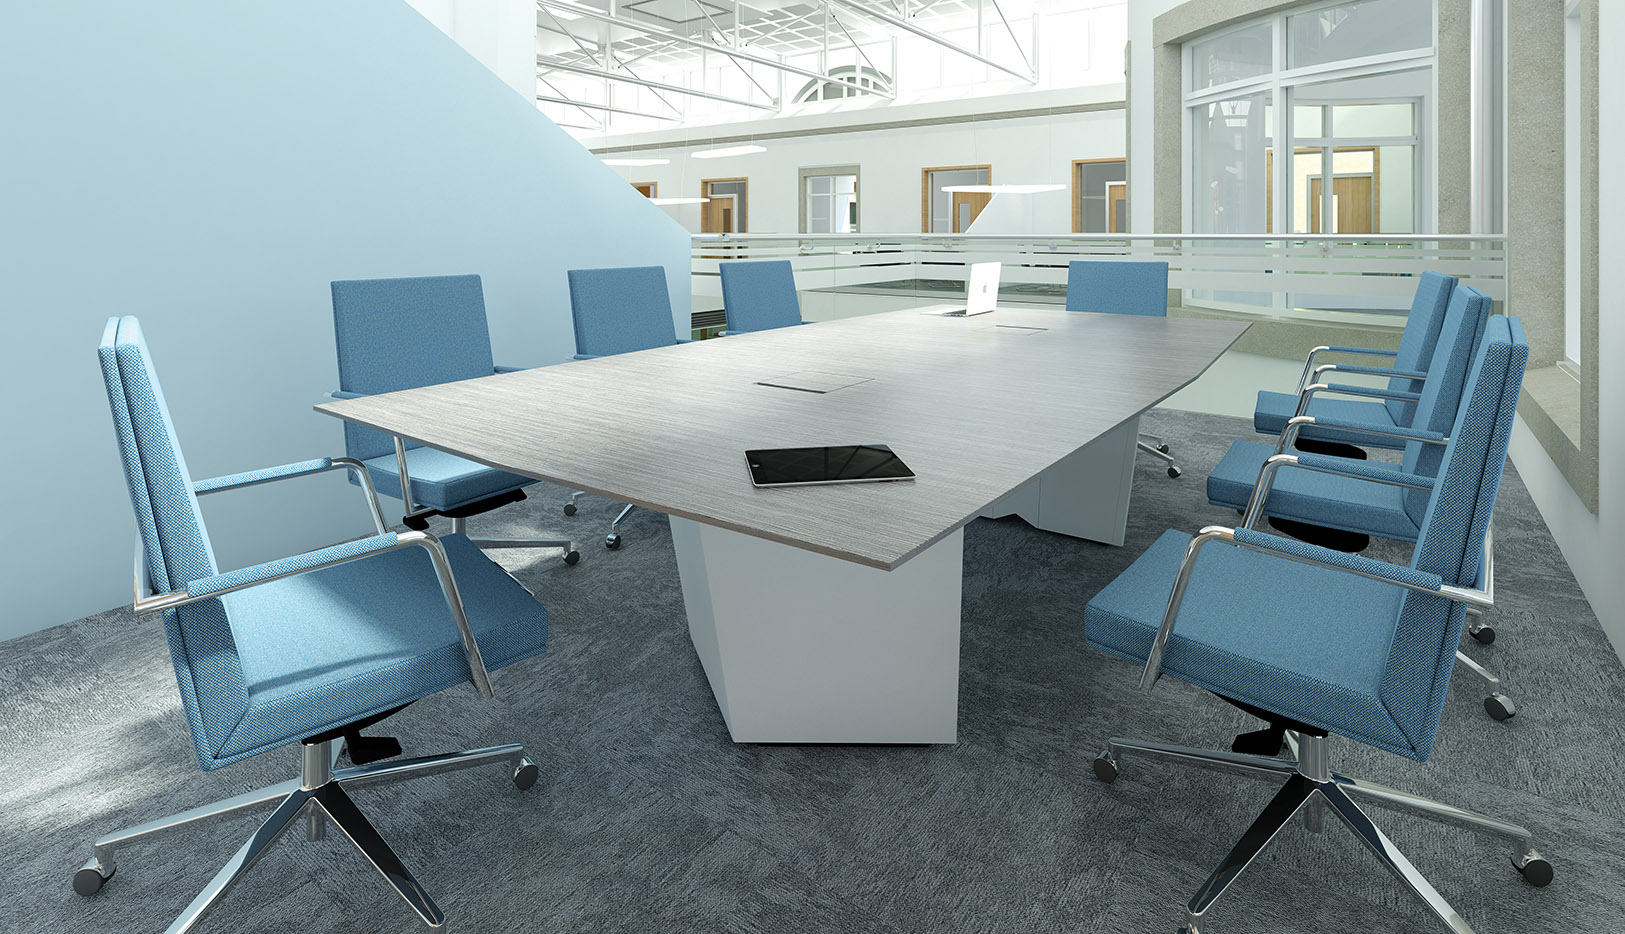 Corporate Workspace | Contract Furniture Consultants | Page 4